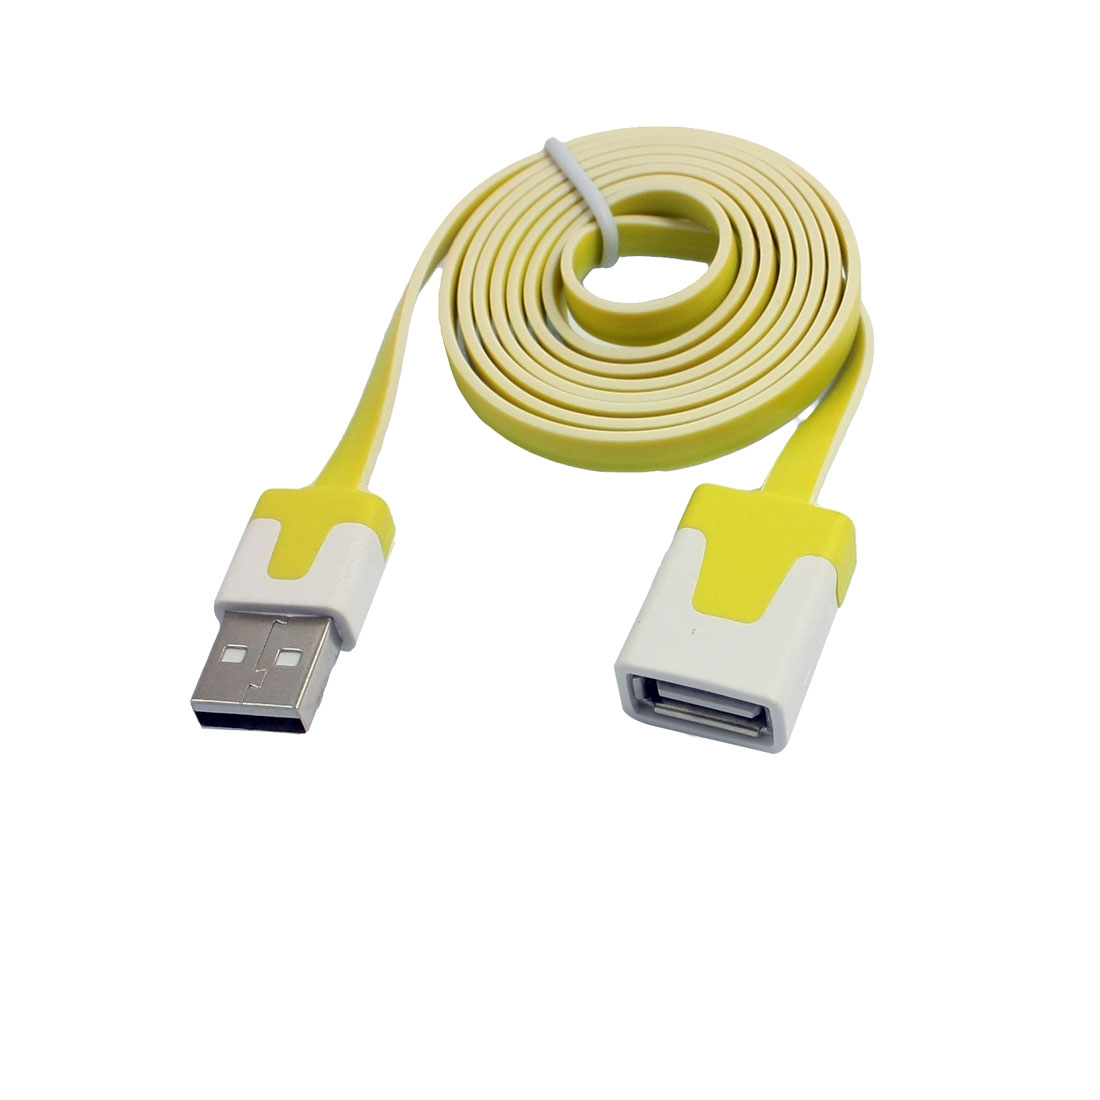 1M USB A Male to Female Repeater Extension Cable Yellow White